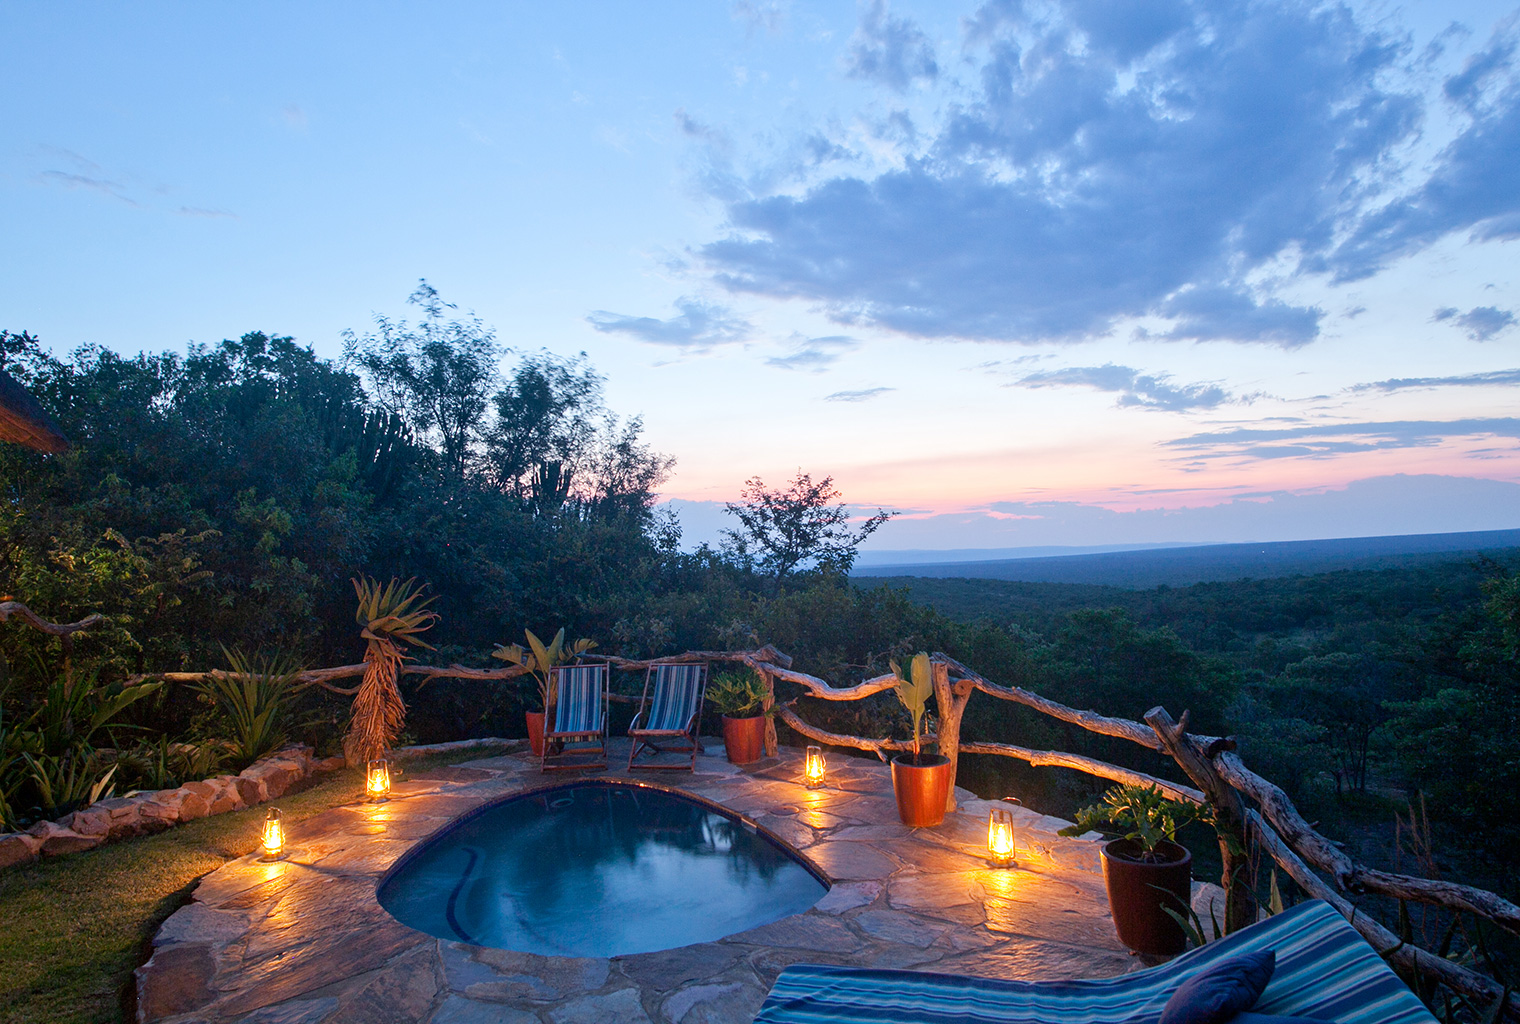 Ants-Nest-South-Africa-Pool-Views